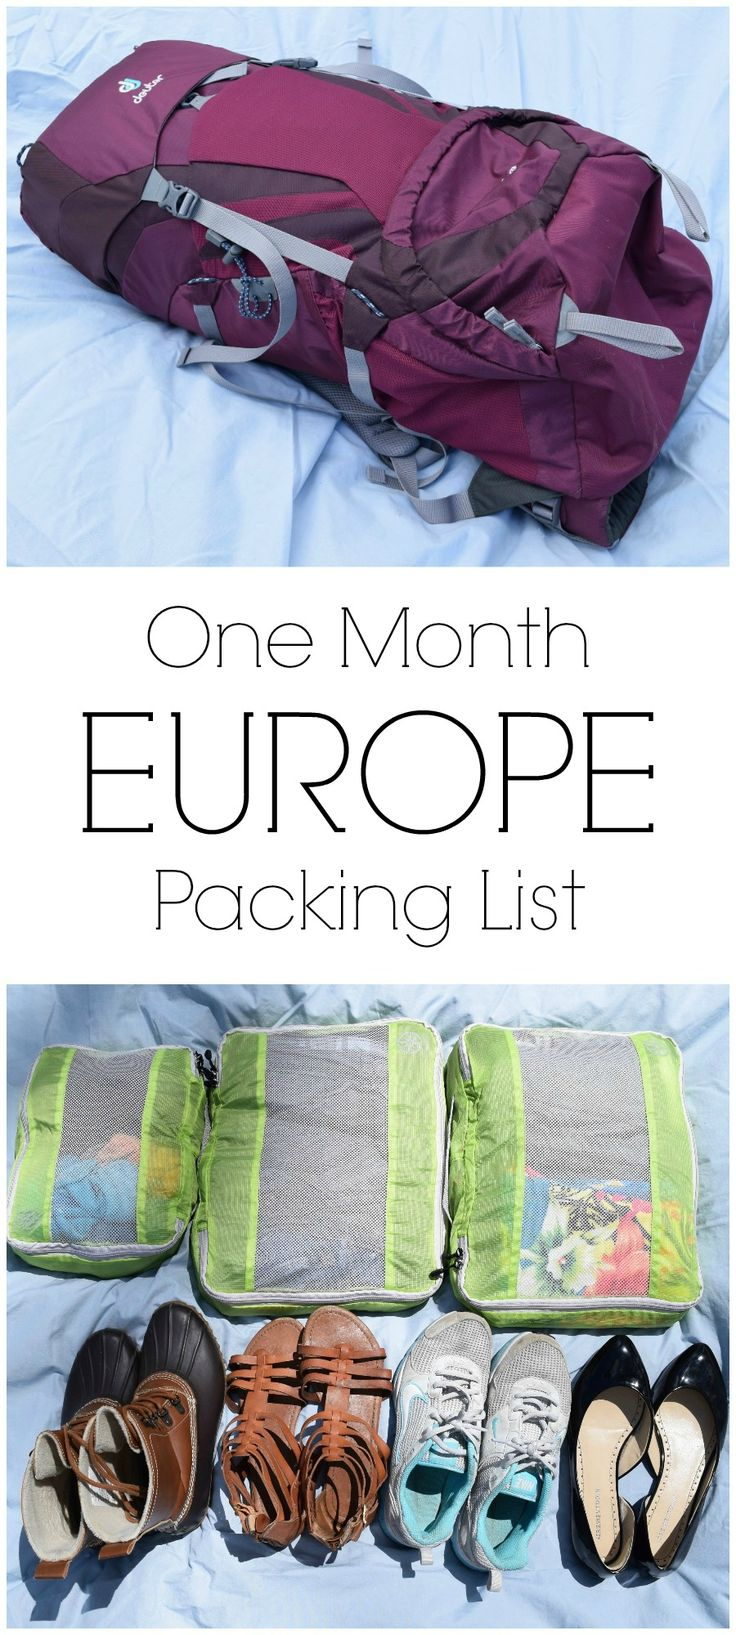 With only a carry-on, packing for our one month trip through Europe had to get…